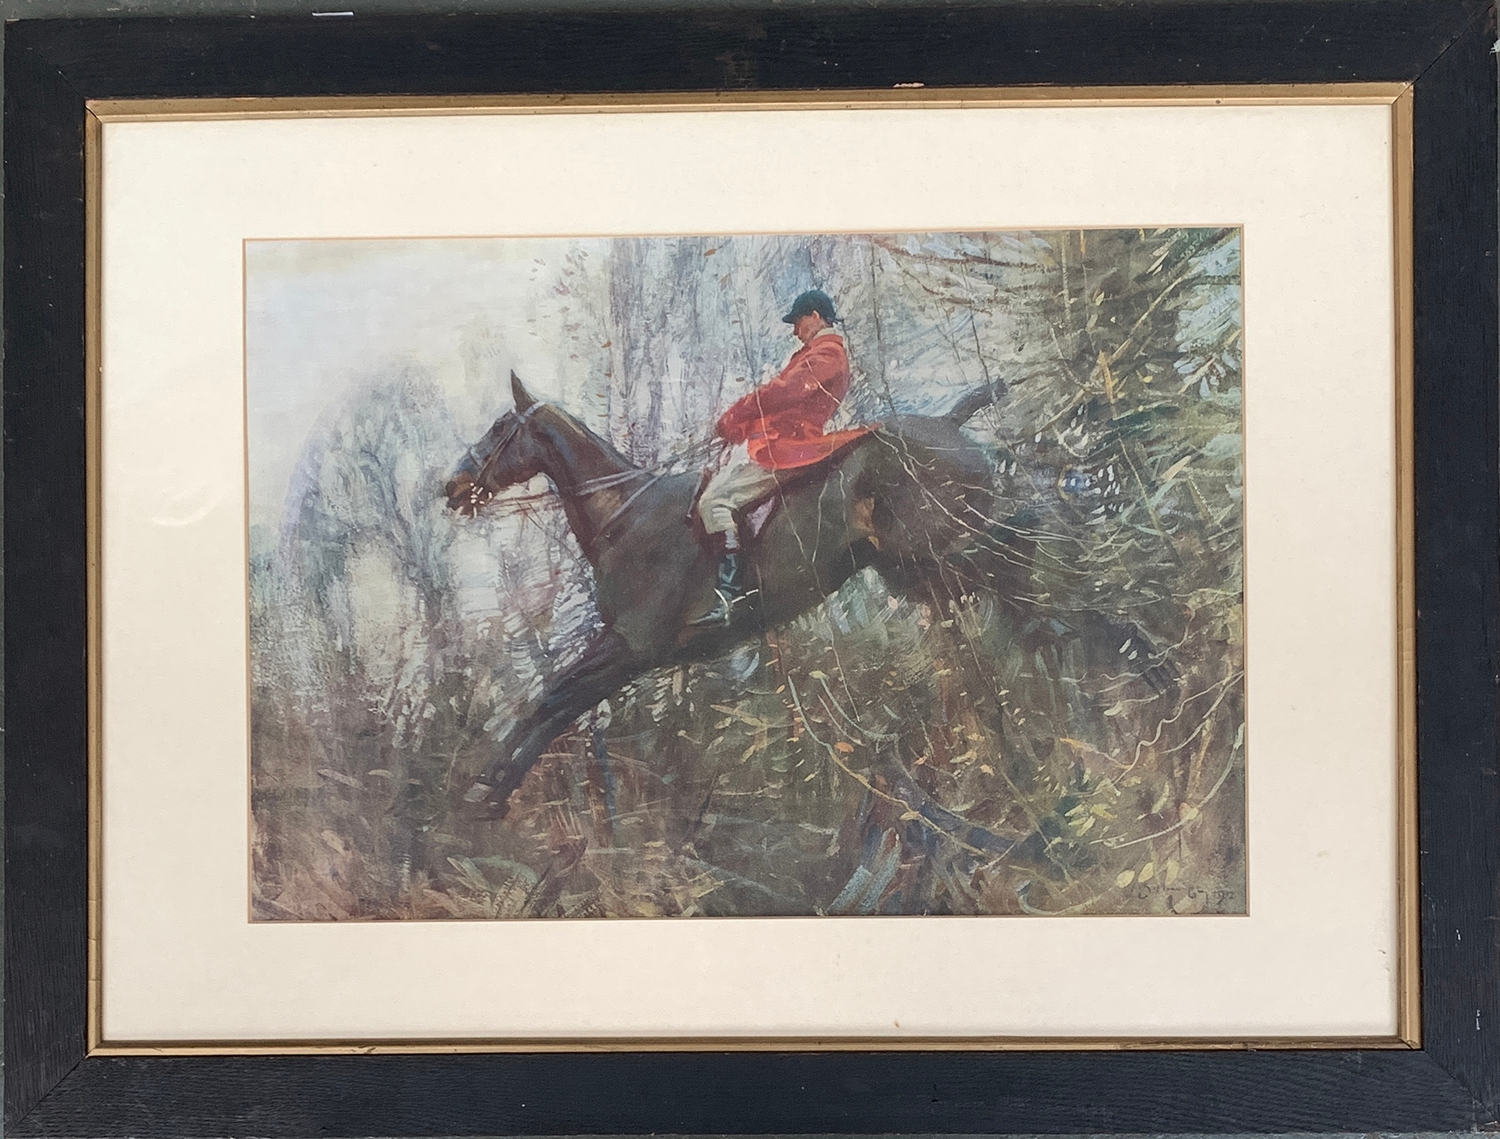 After Alfred Munnings, 'The Huntsman', colour print, 40x57cm; together with one other